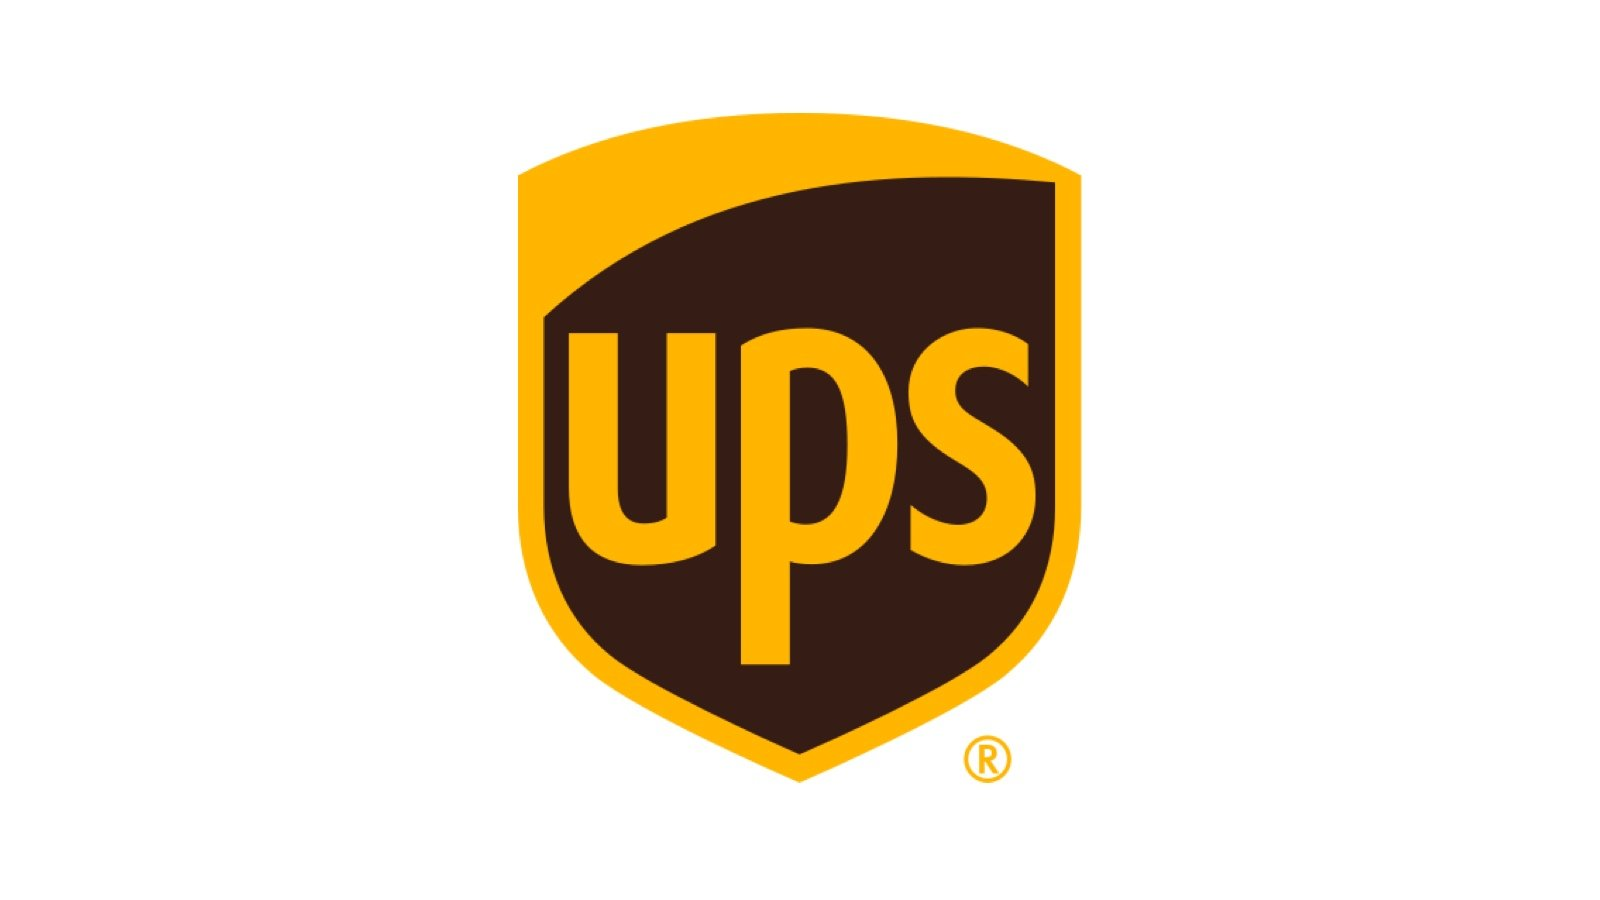 Brown UPS logo